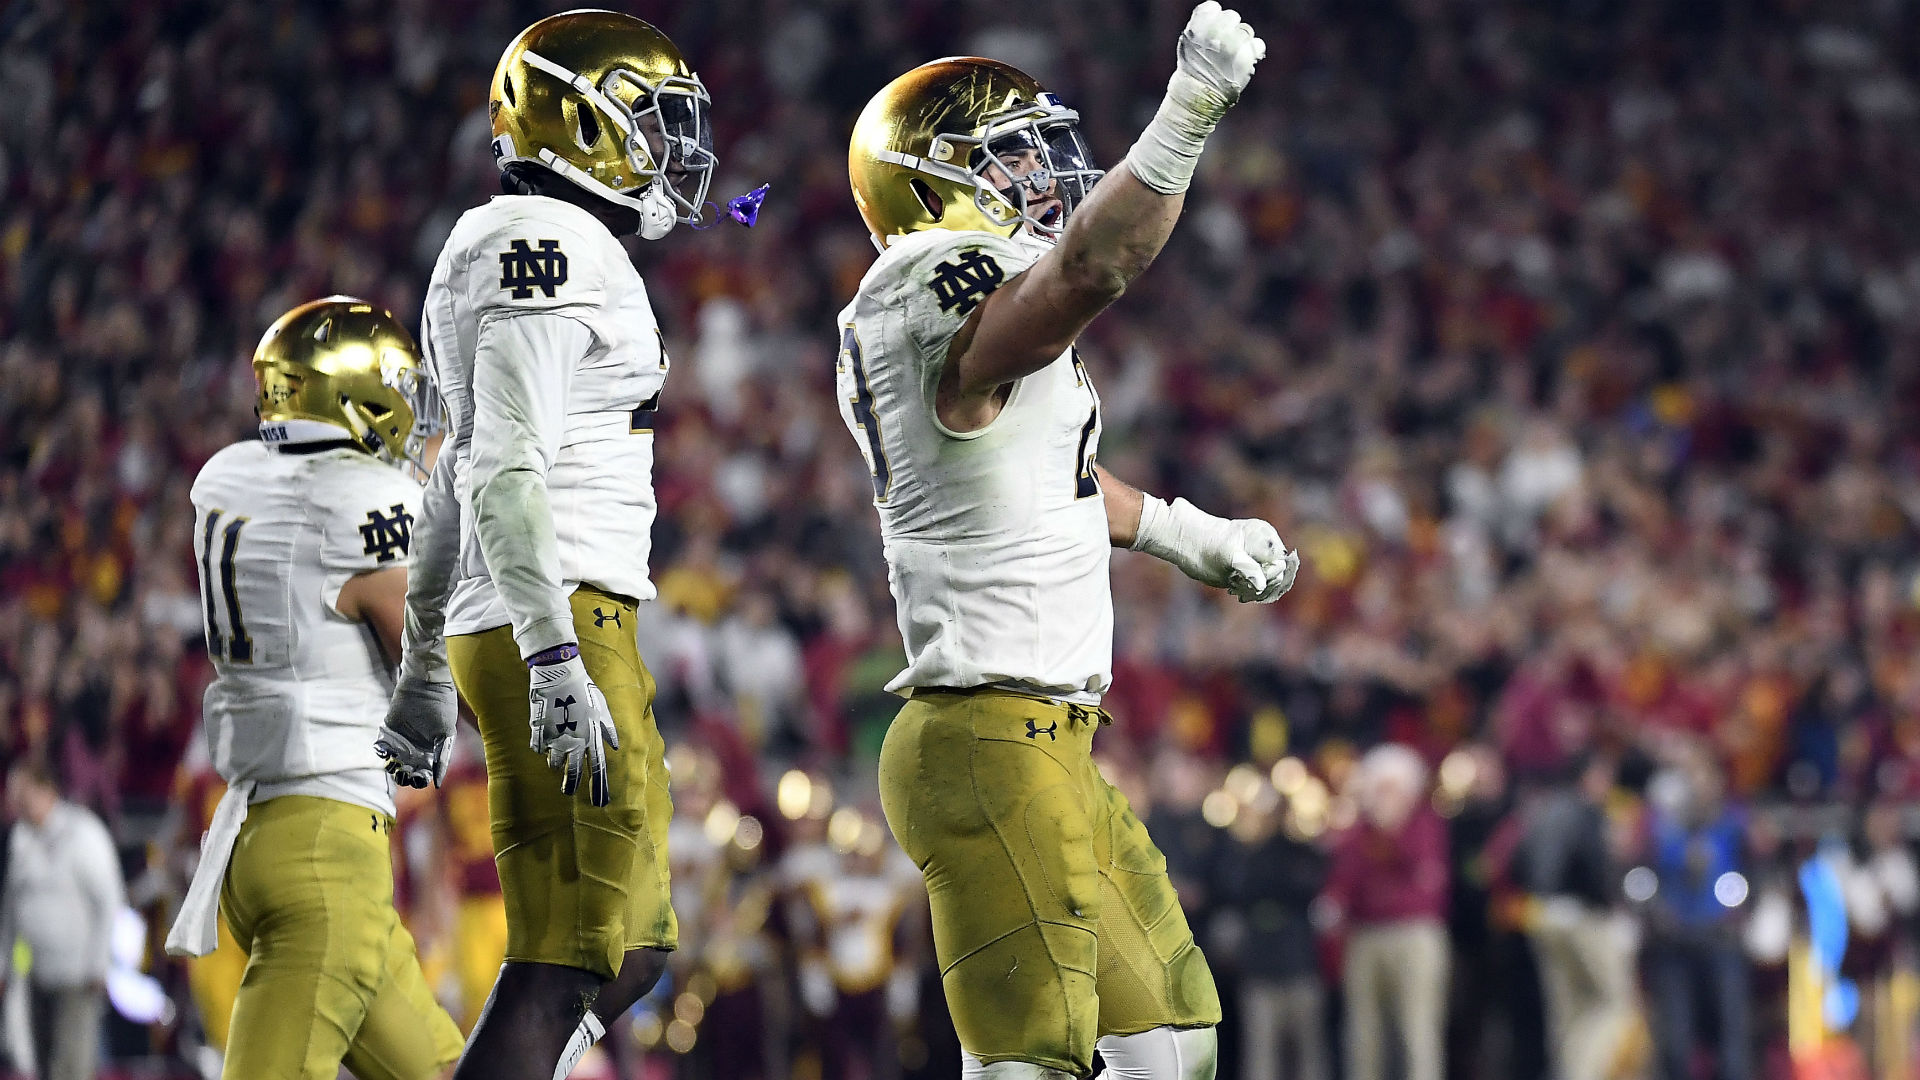 Three takeaways from No. 3 Notre Dame's win over USC